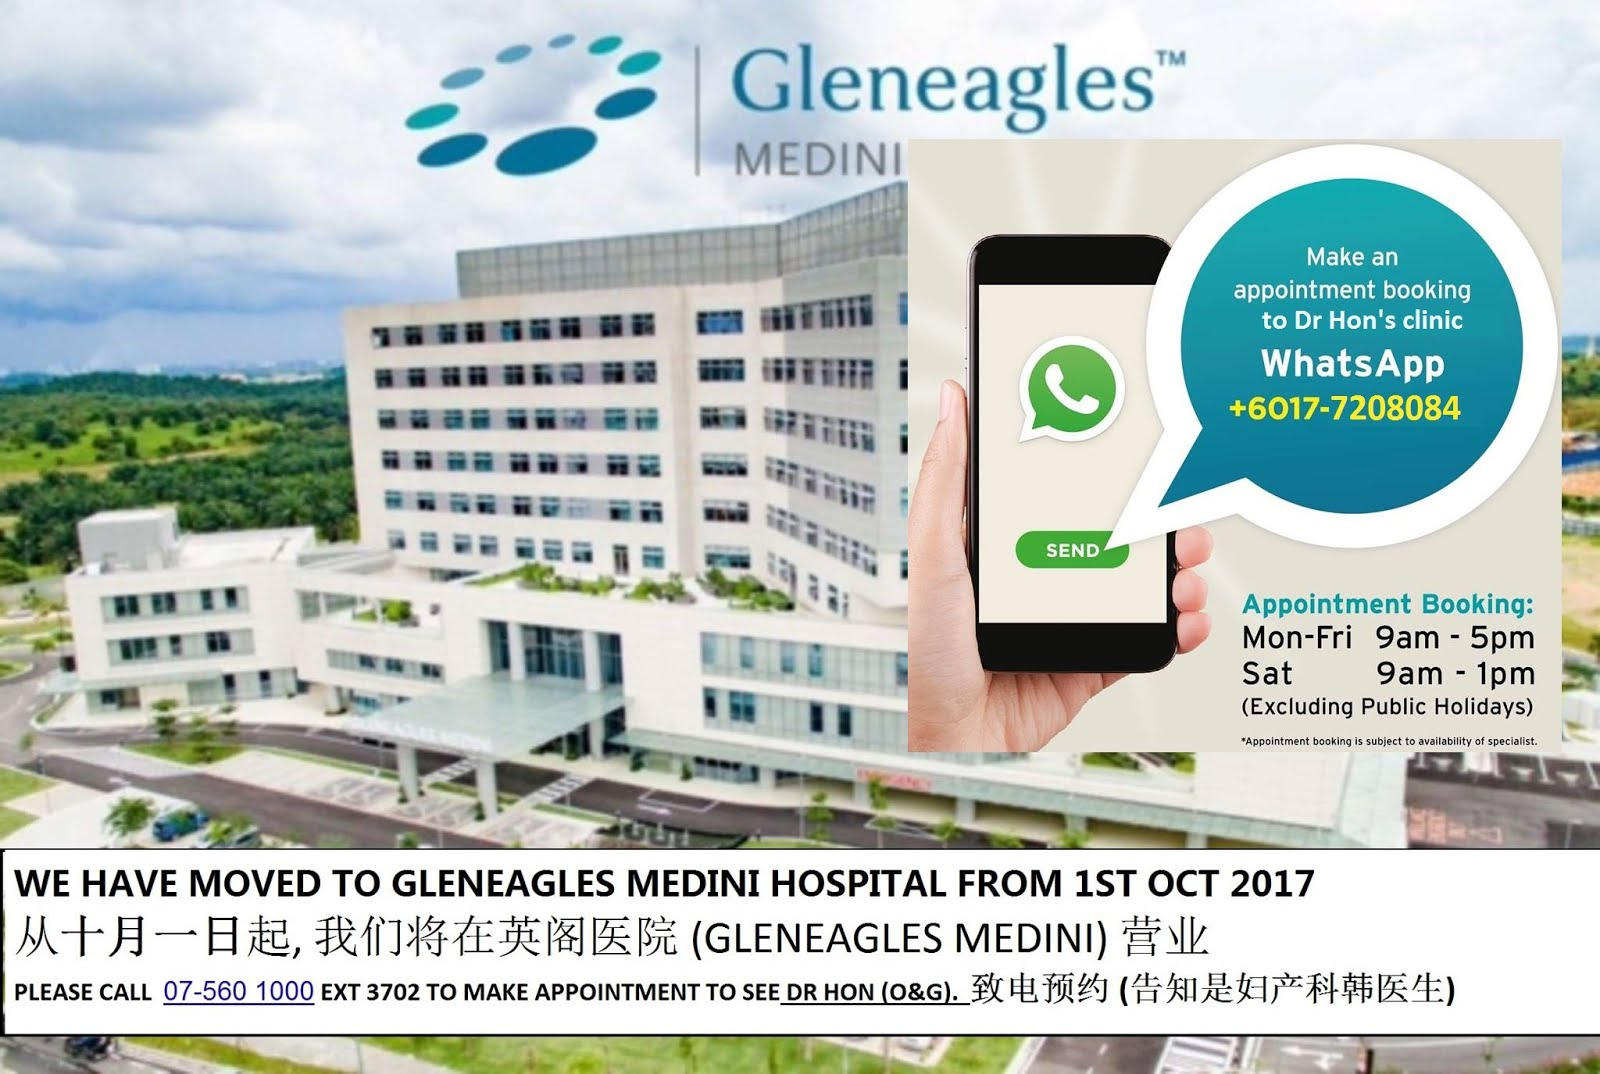 WE HAVE MOVED TO GLENEAGLES MEDINI HOSPITAL FROM 1ST OCT 17